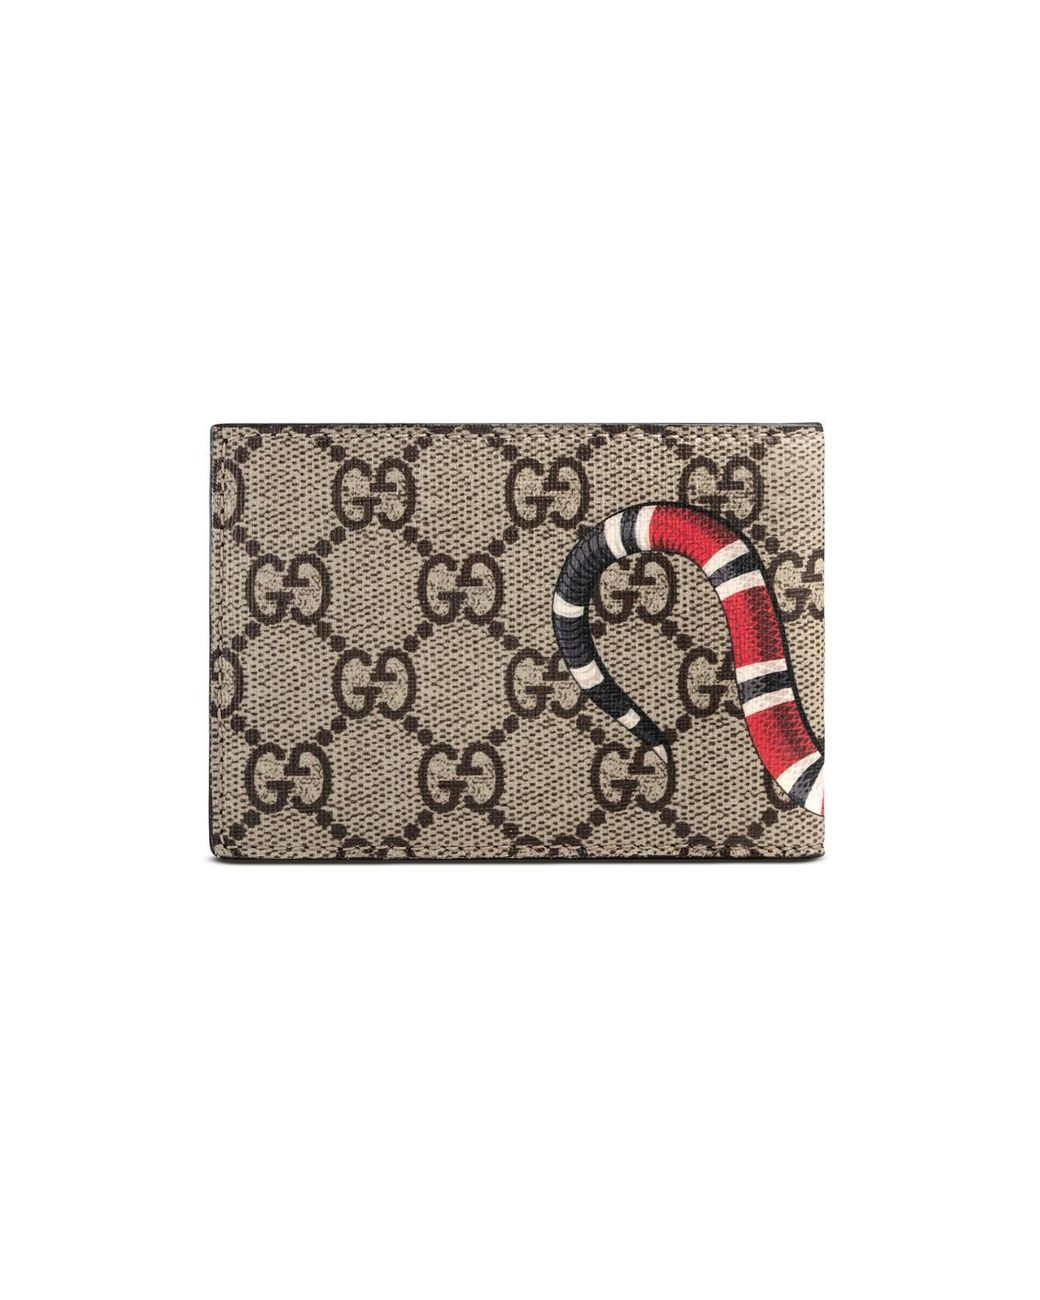 8443243b4aeb Gucci Kingsnake Print GG Supreme Wallet for Men - Save 24% - Lyst